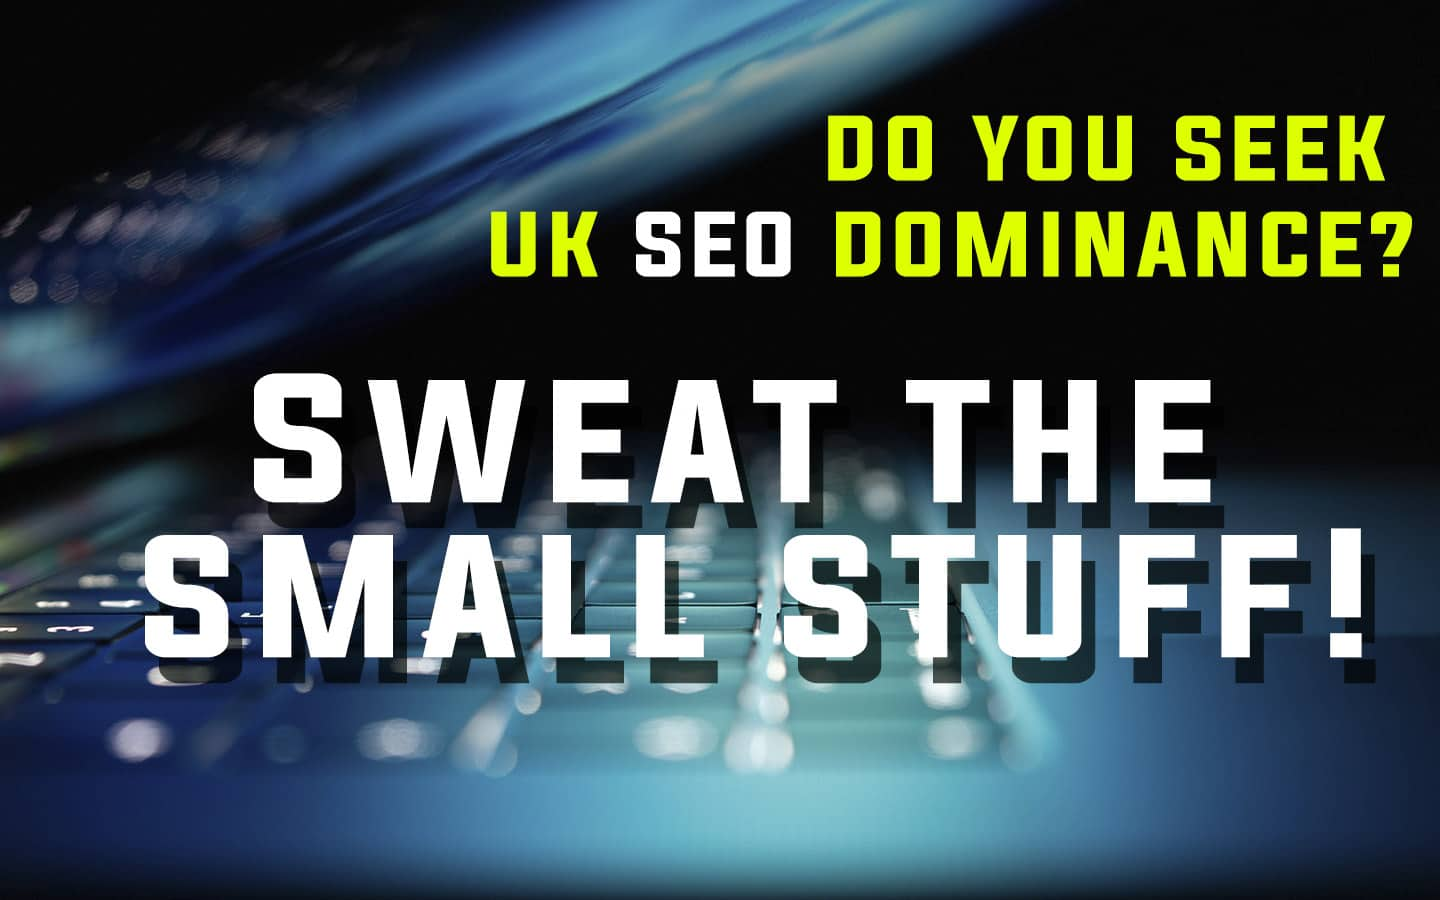 Text Reading 'Do You Seek UK SEO Dominsnce?' Sweat The Small Stuff!' The background is a soft-focus close up of a half-closed laptop.